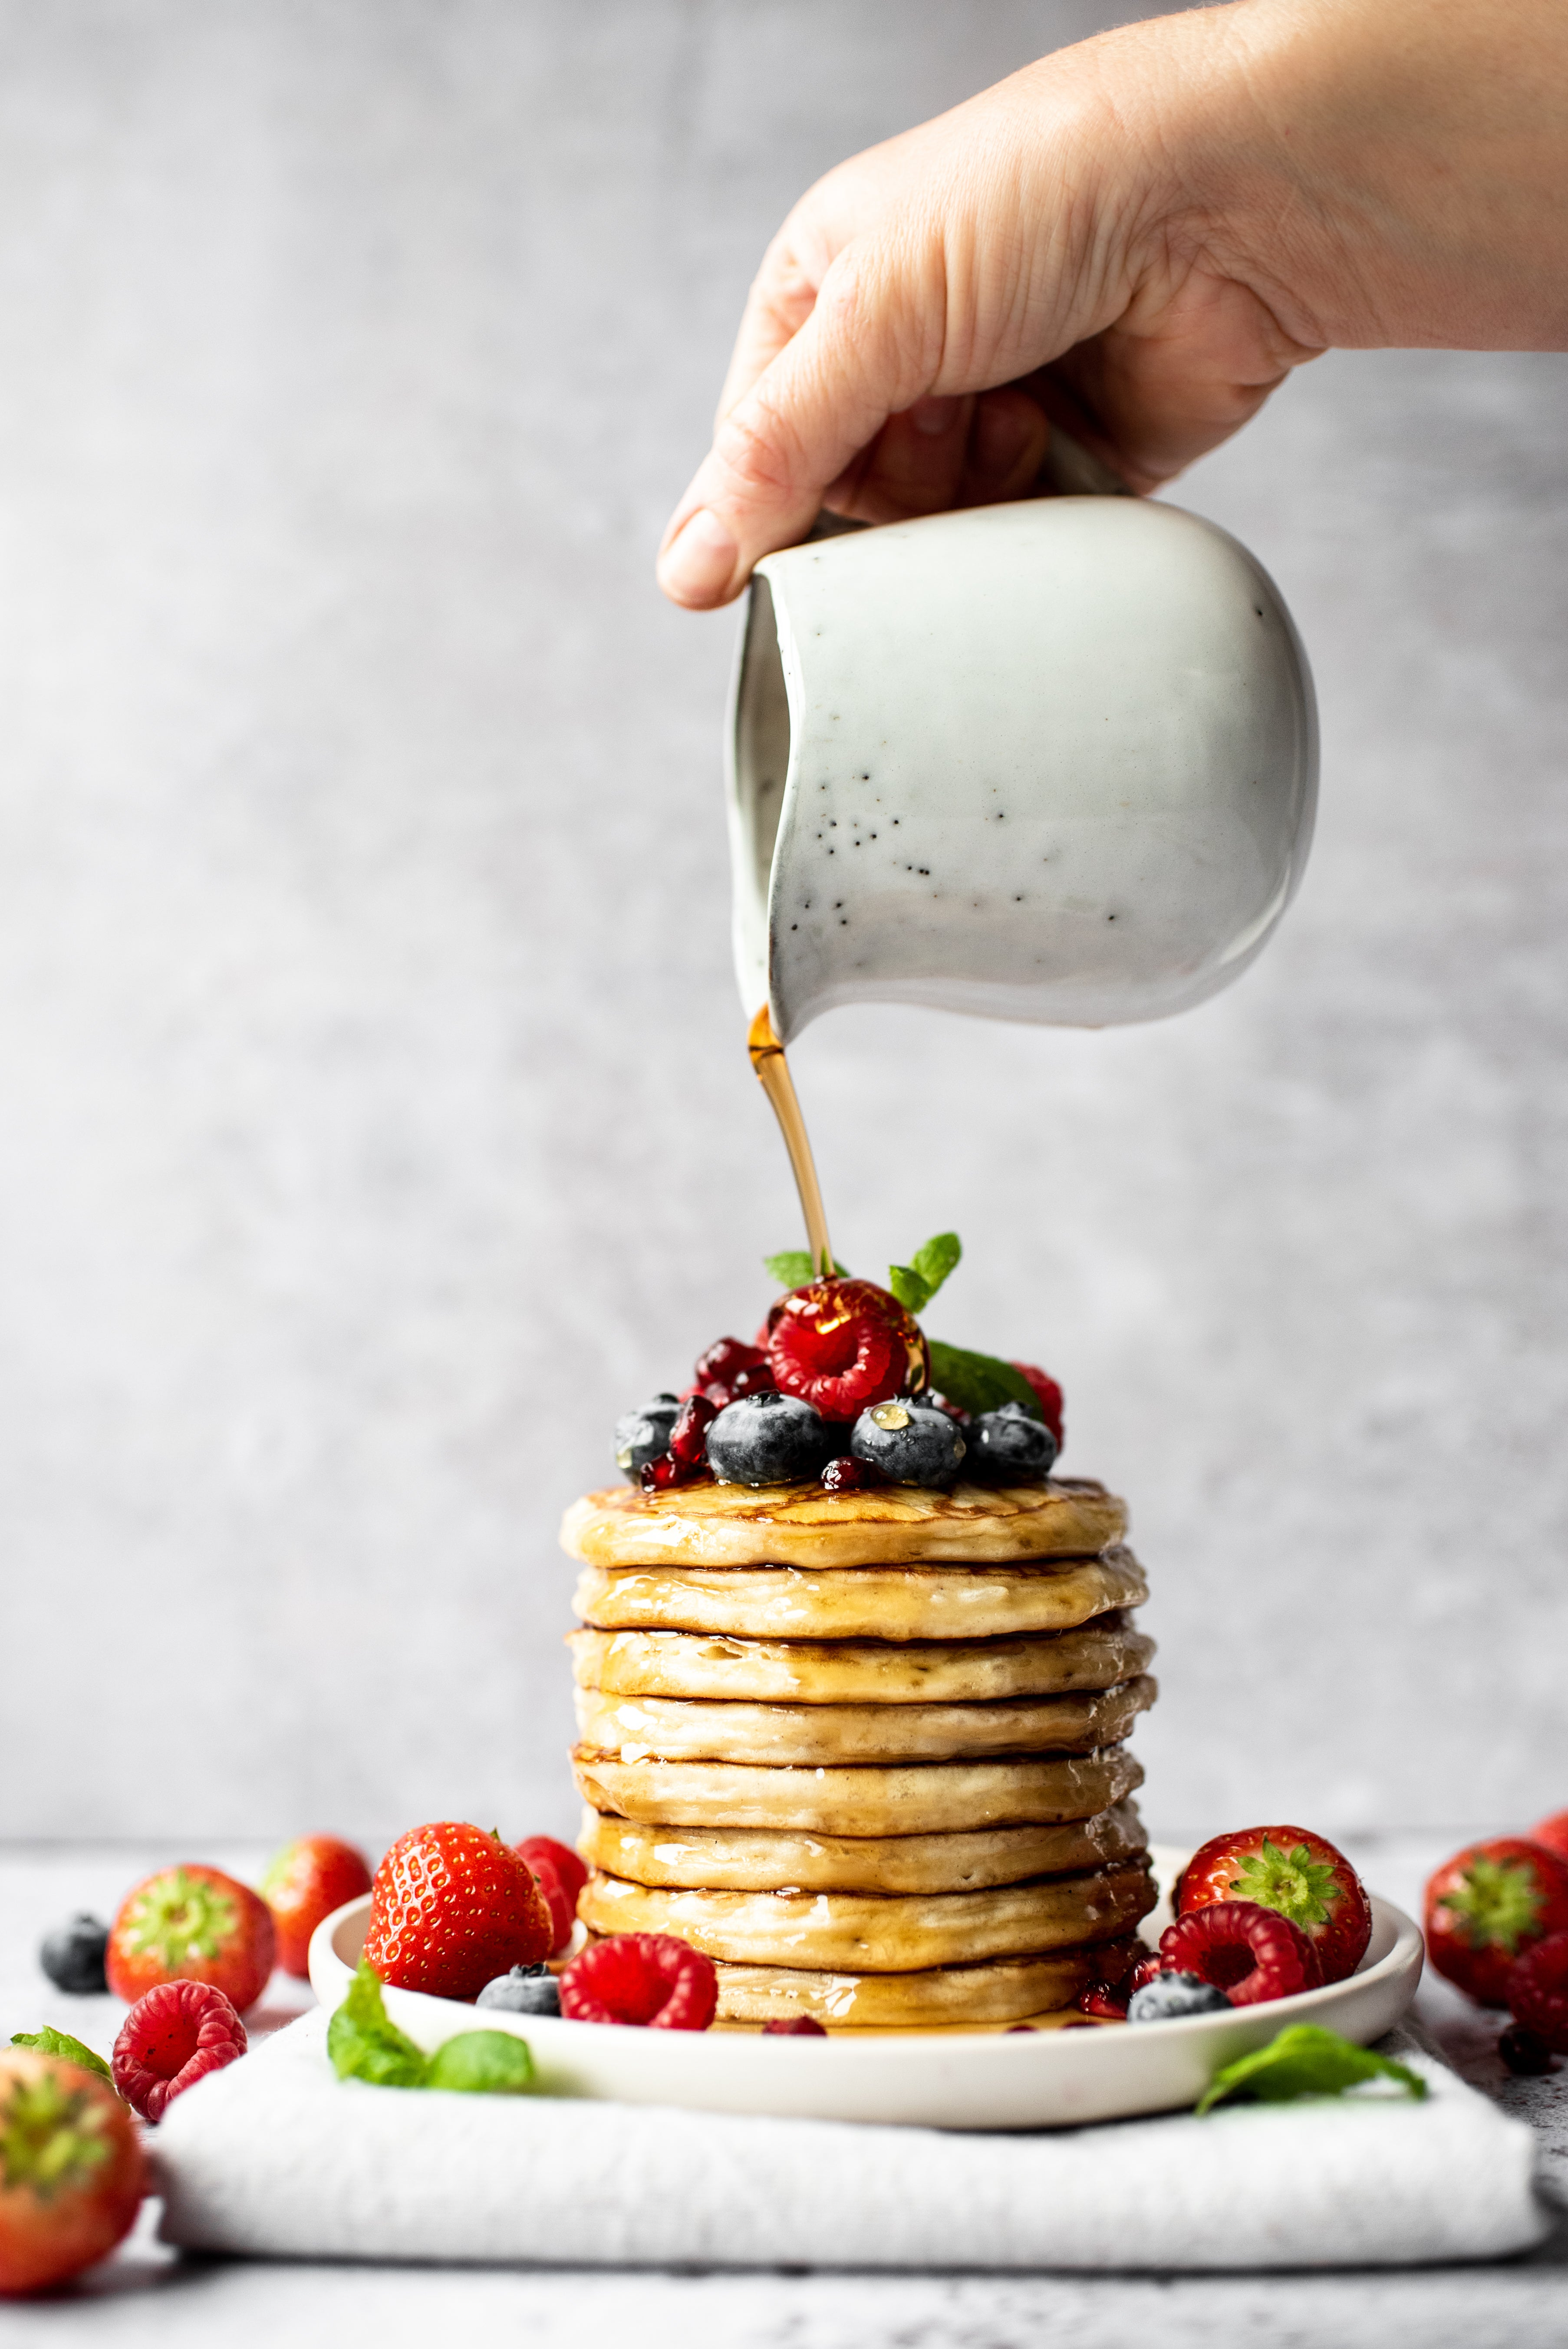 Stack   of pancakes topped with fresh berries and a hand pouring maple syrup from a jug